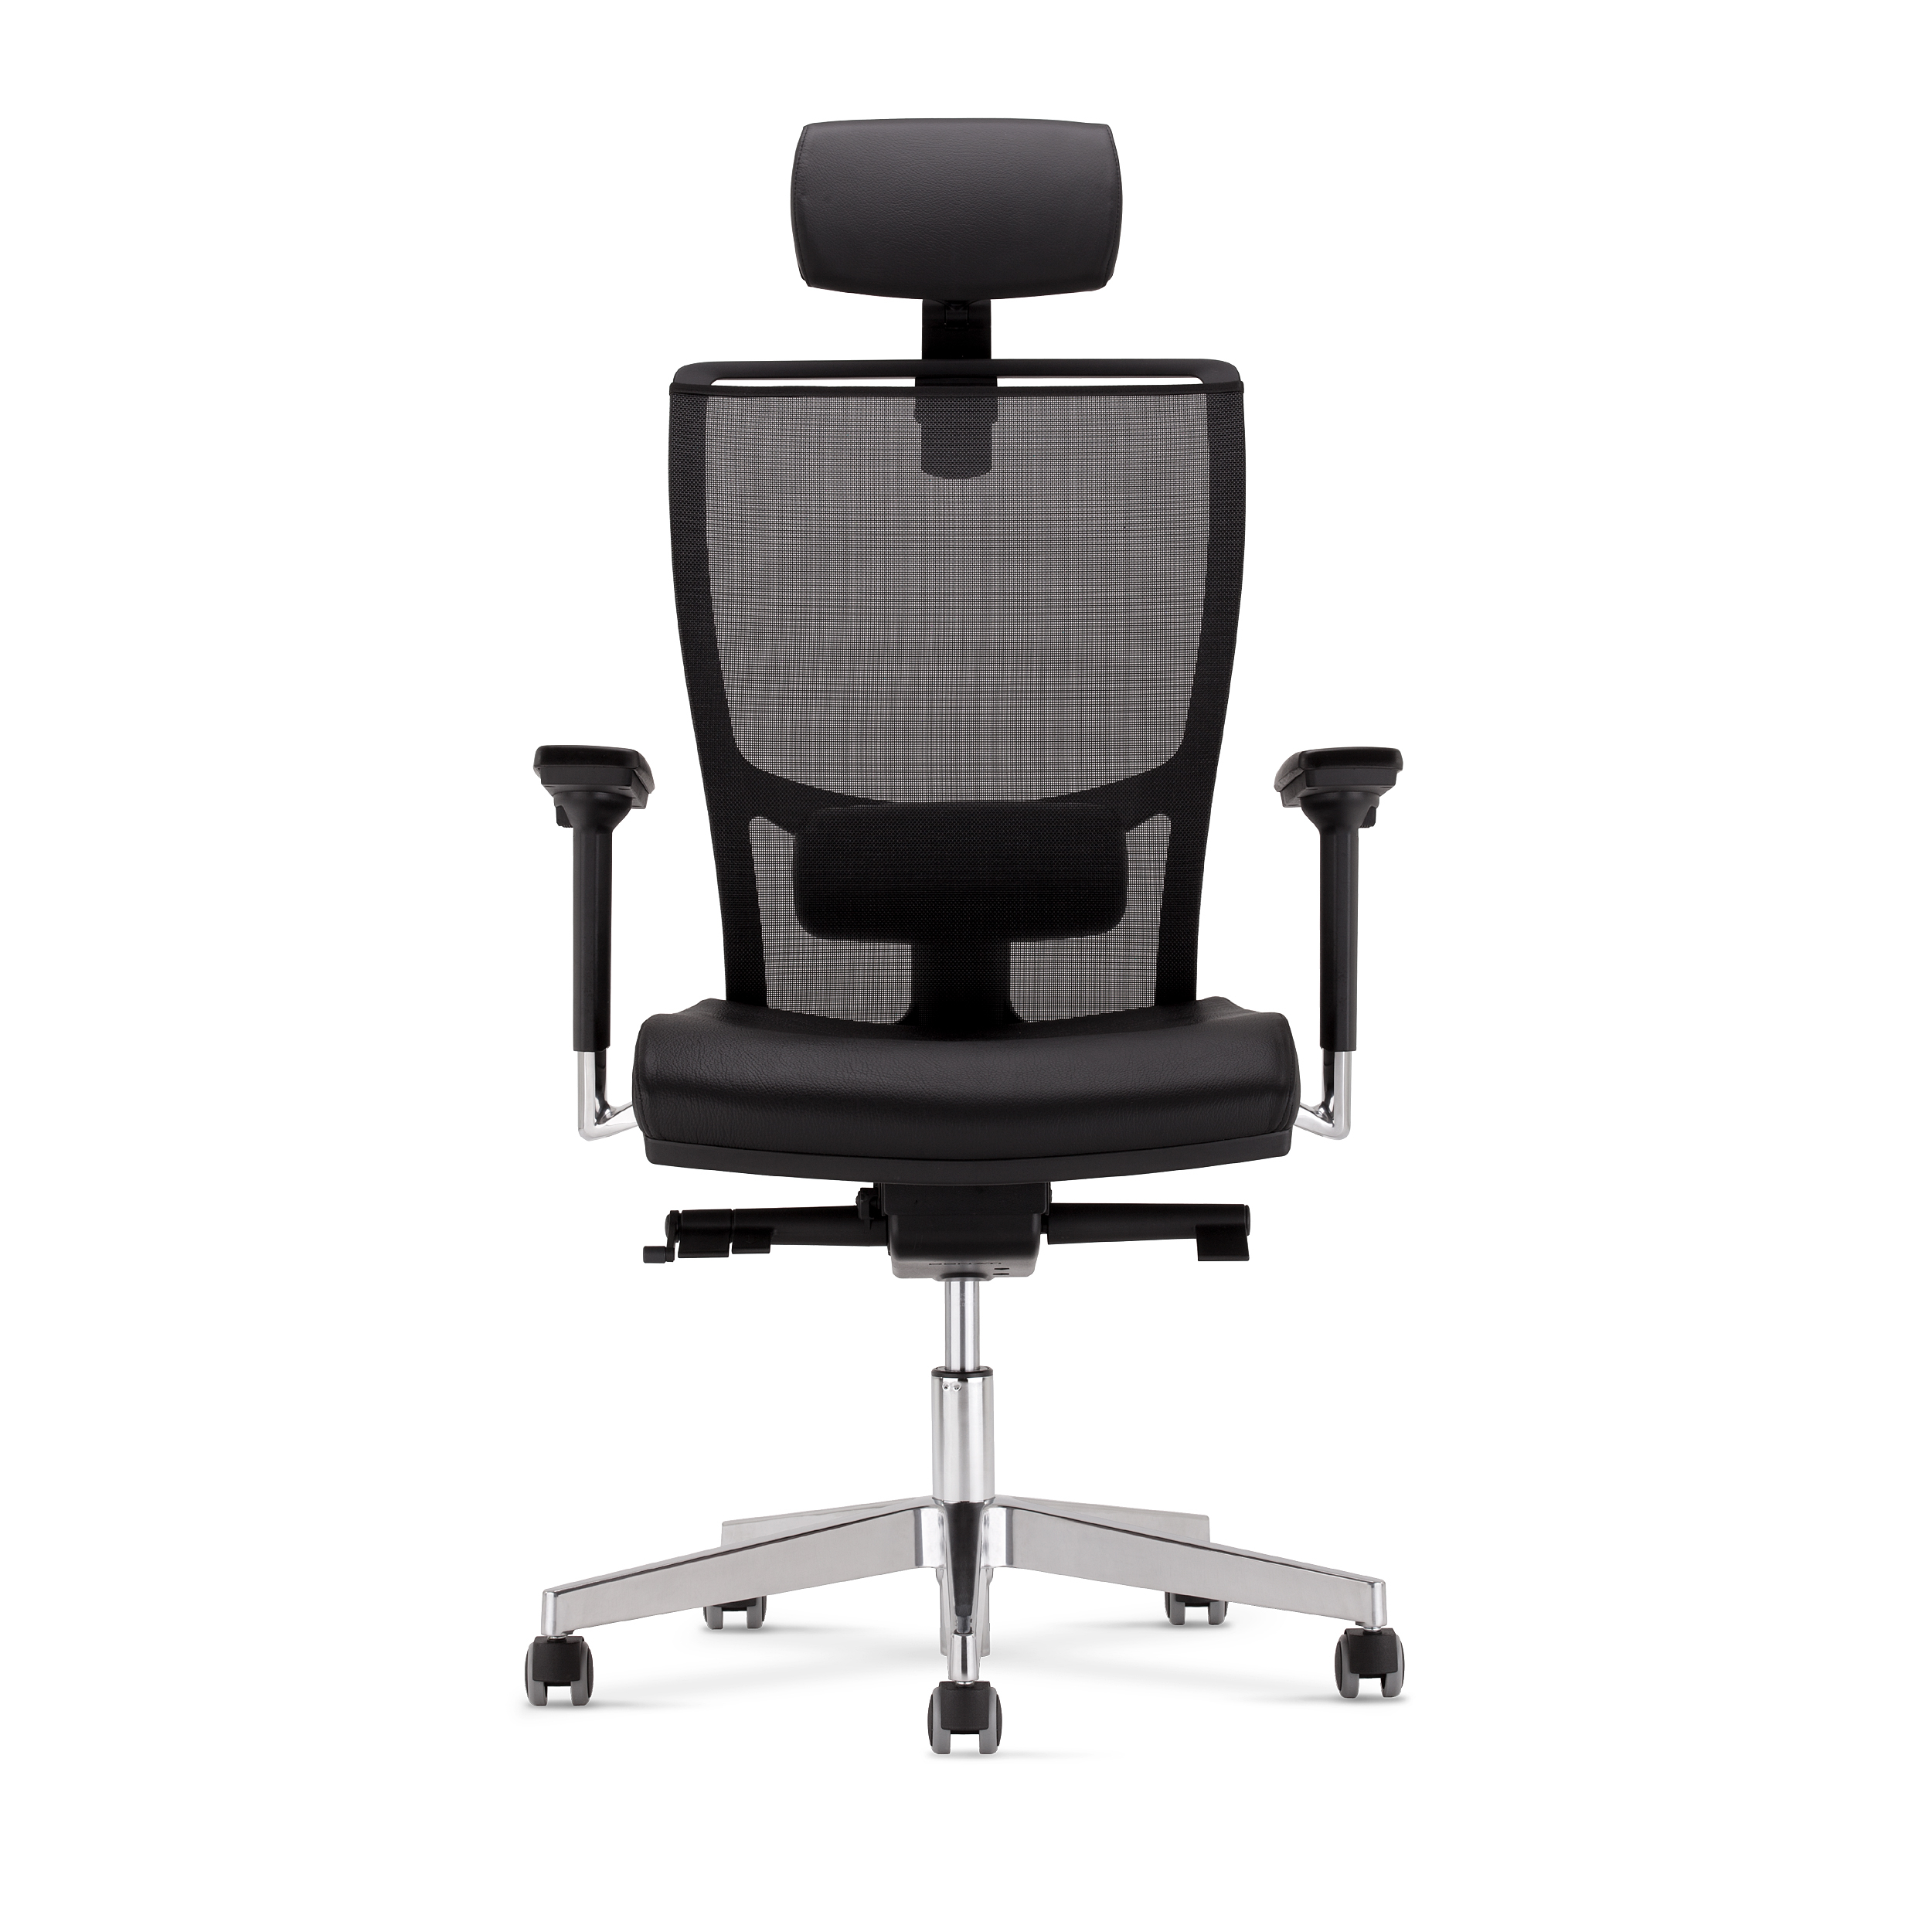 Chaise de bureau ergonomique Z-body